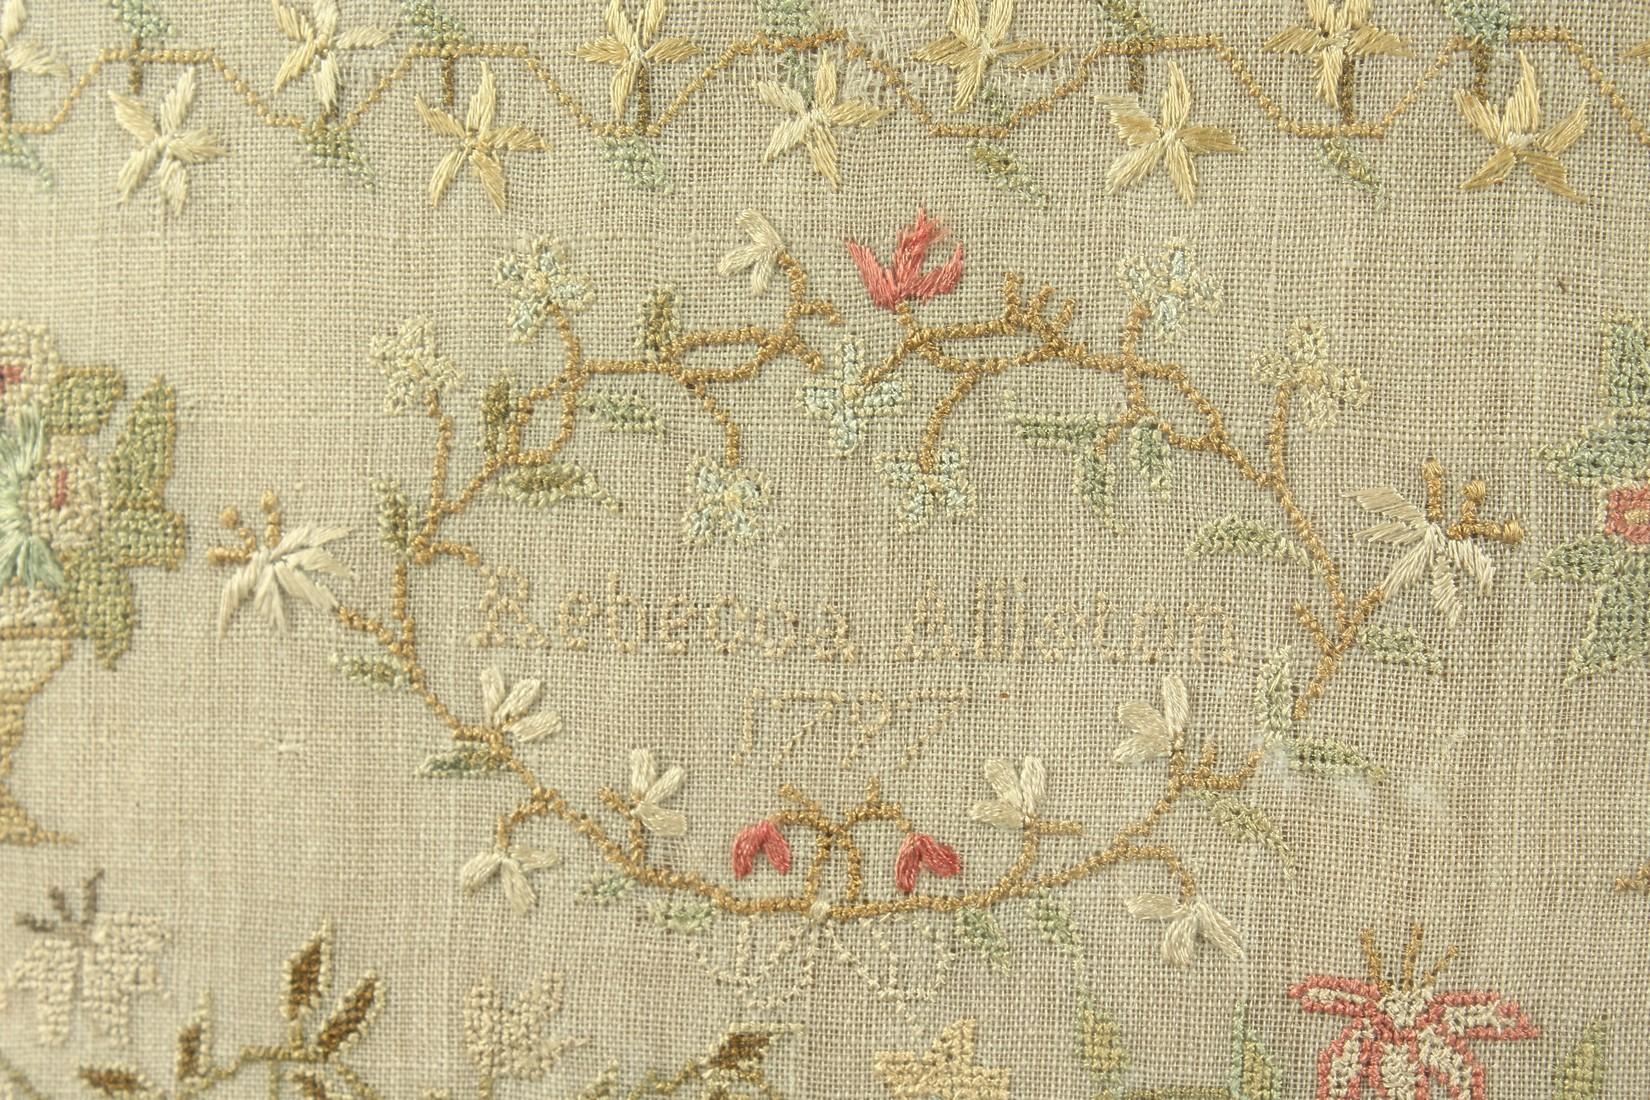 A GEORGE III FRAMED AND GLAZED SAMPLER by Roberta Allerton, 1787, with a poem, birds, flowers etc. - Image 5 of 7